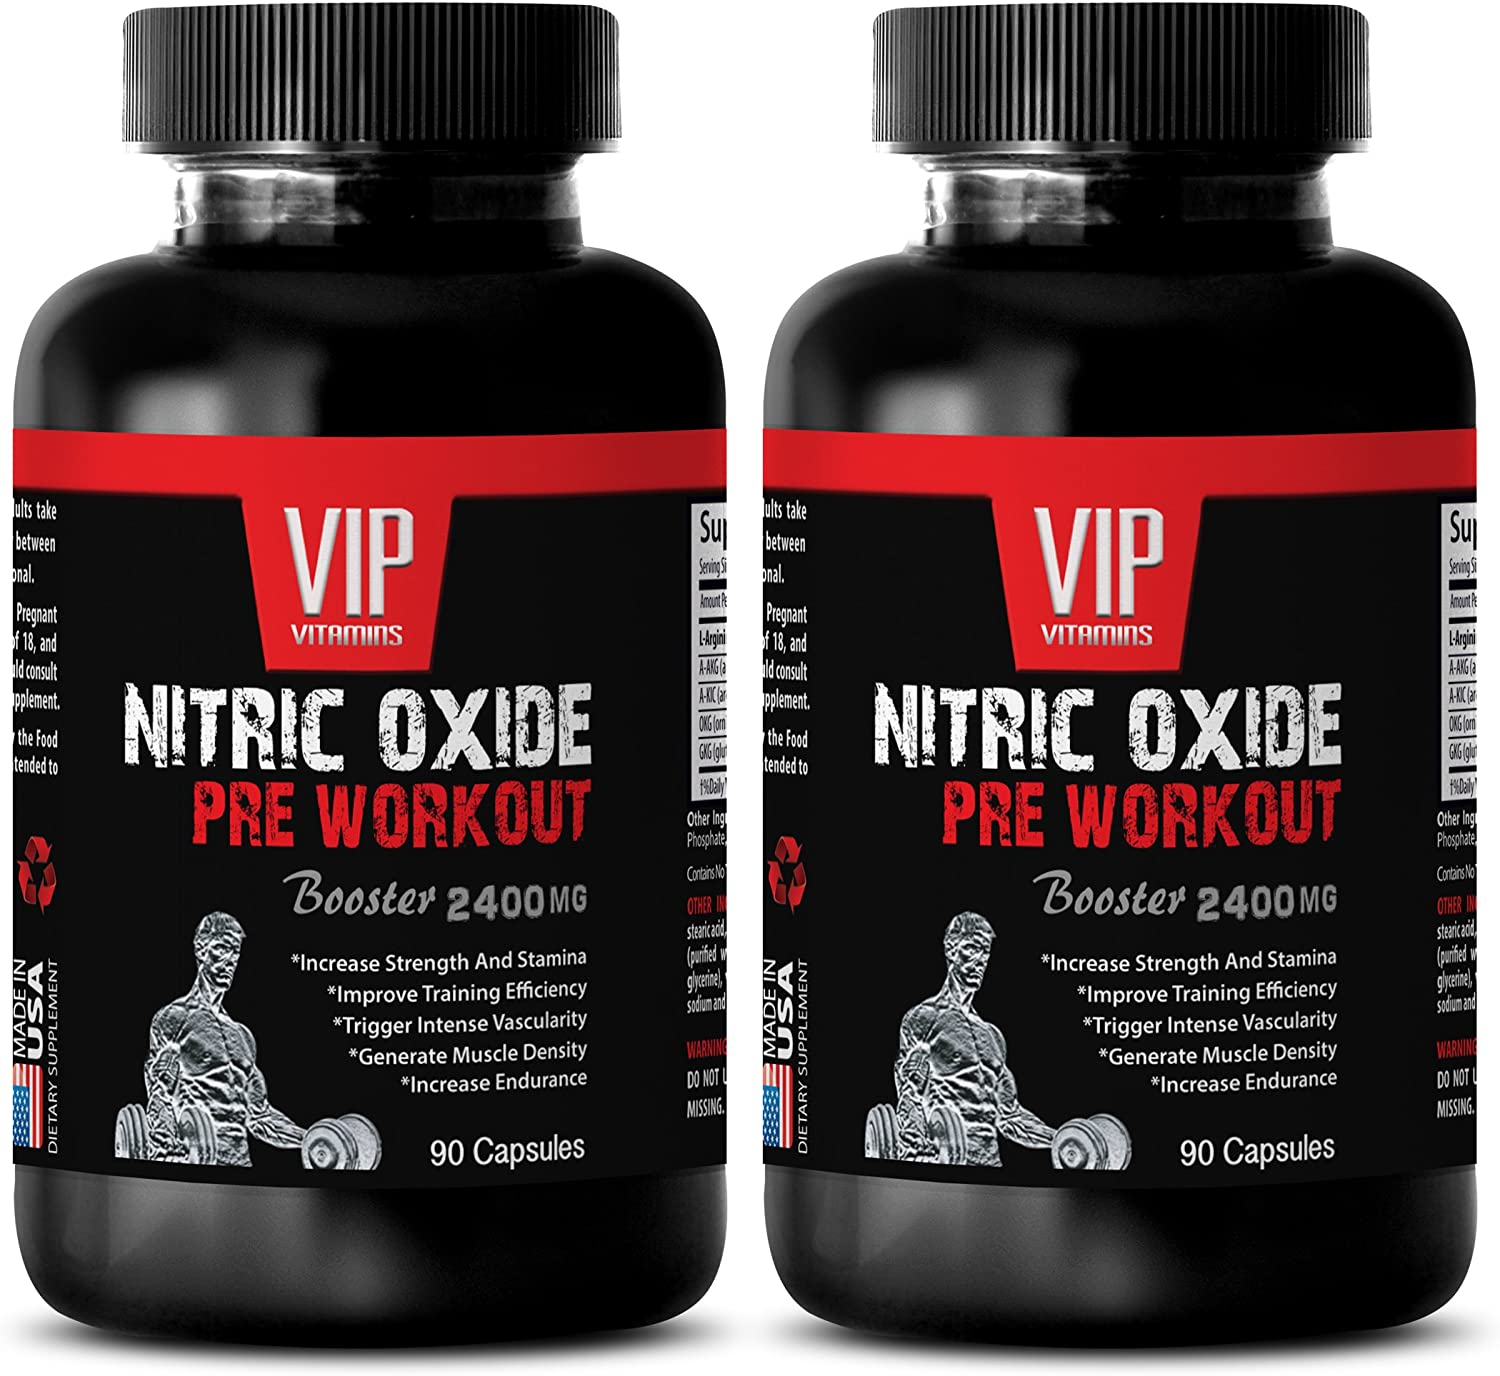 Muscle gain - Nitric Oxide PRE Workout 2400MG - Fat Burner - Boost Muscle Mass and Strength - Nitric Oxide Enhancer - 2 Bottles (180 Capsules)